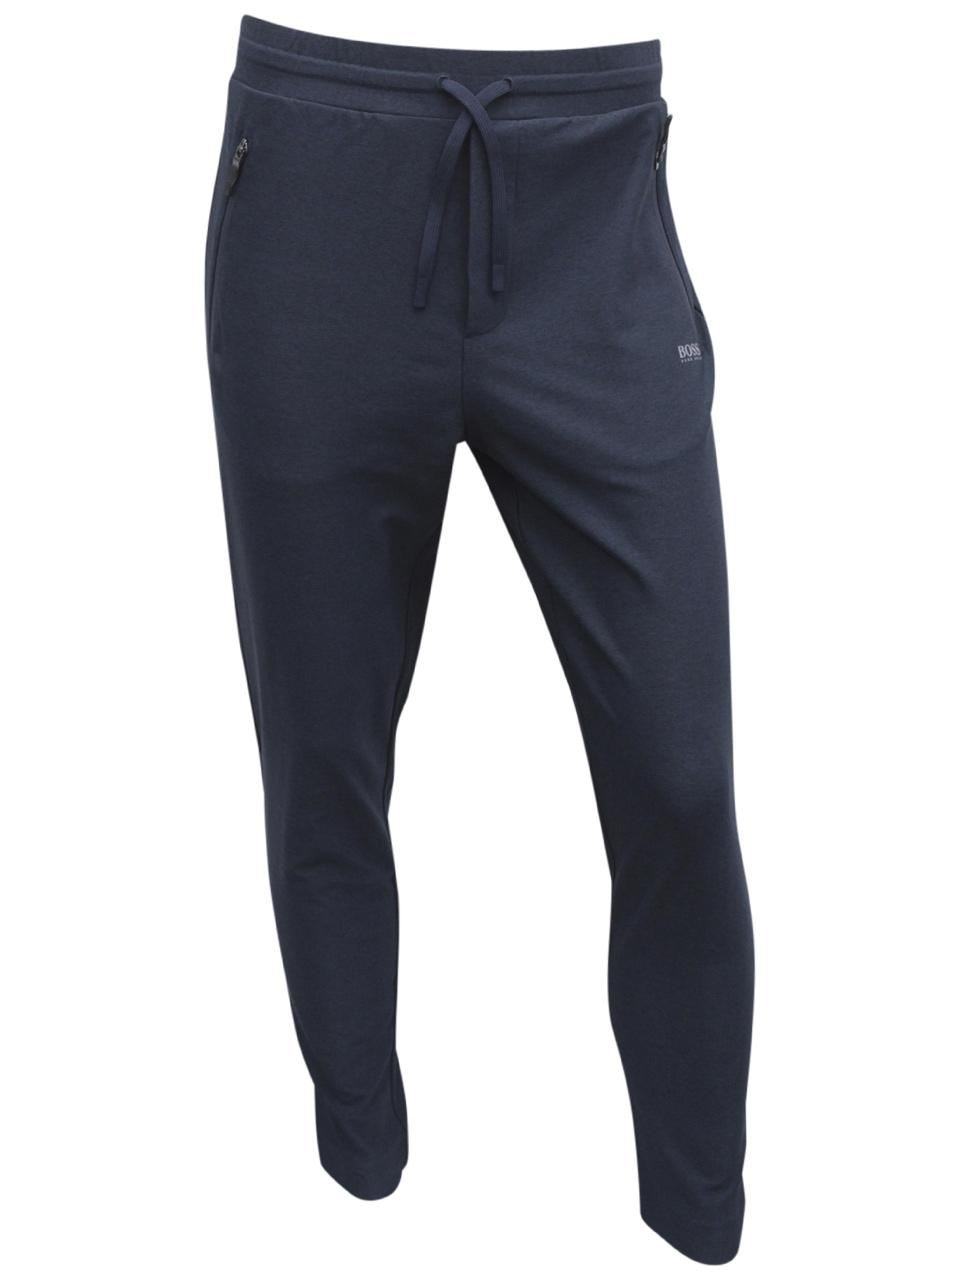 Hugo Boss Mens Authentic Piped Jersey Lounge Pants